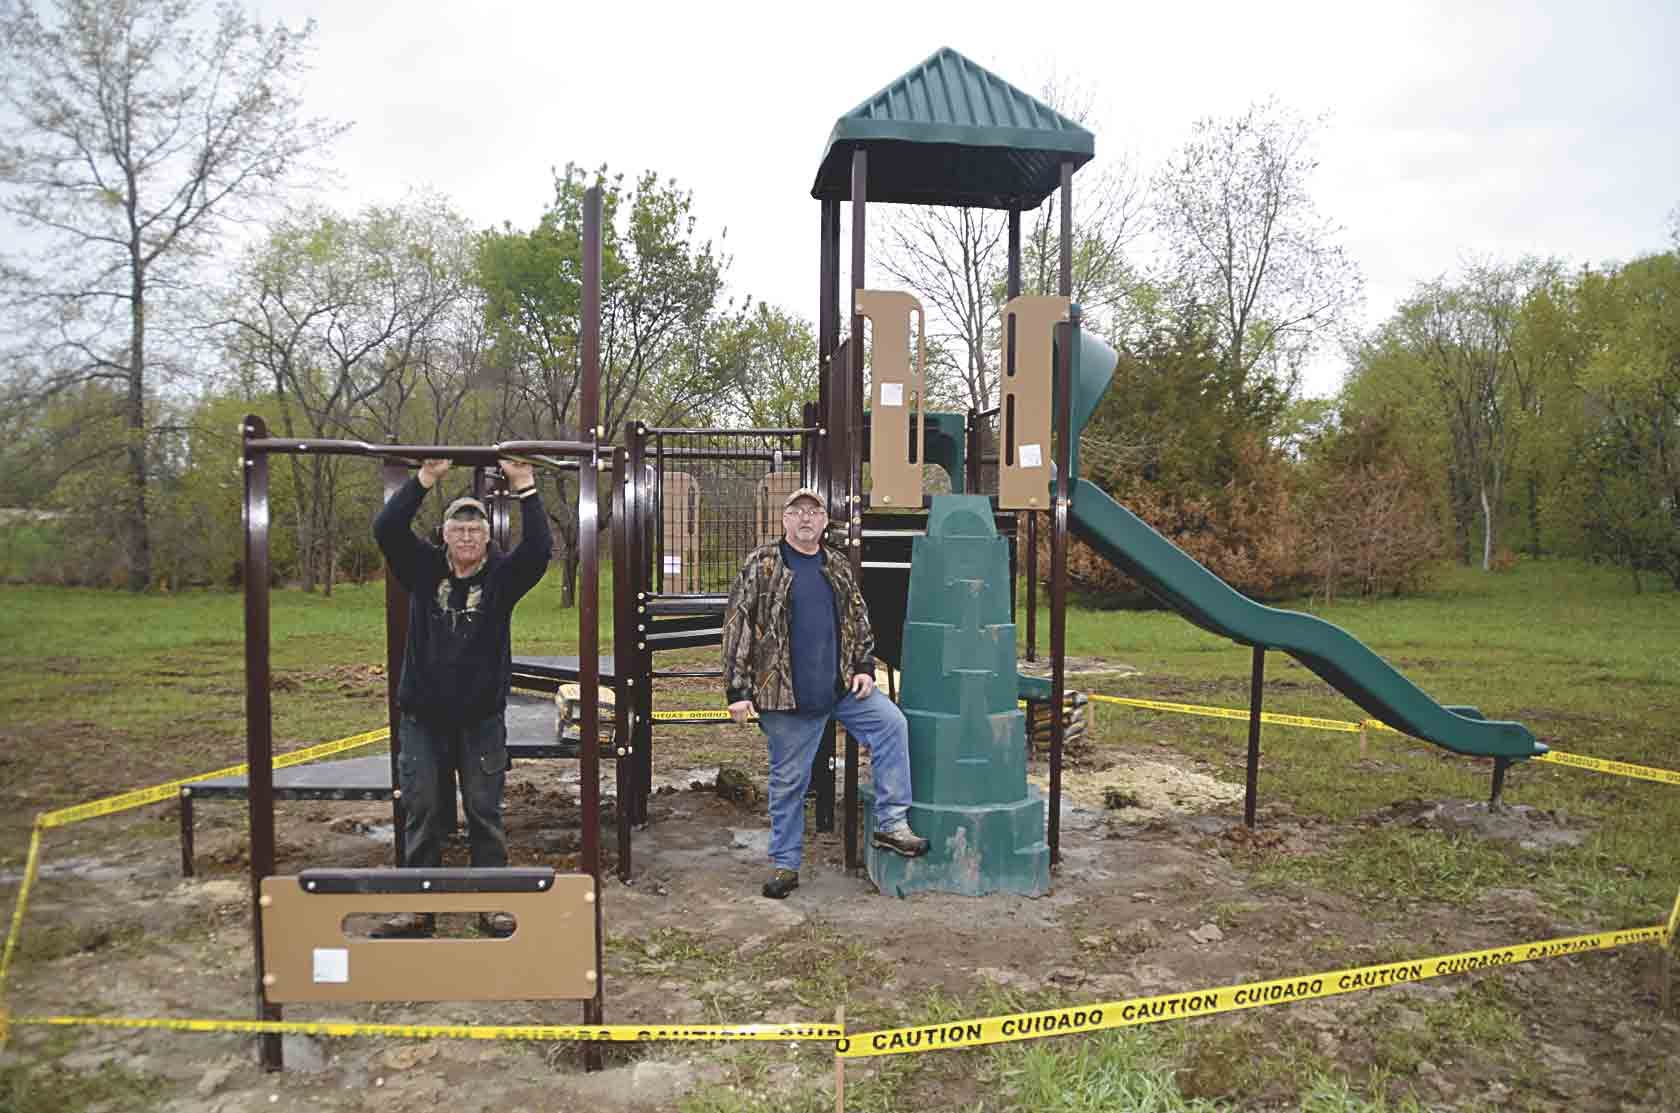 The Friends of the Volga River Recreation Area recently purchased and installed two new playground sets at the Volga River Recreation Area. The organization was started 10 years ago, and one of its first goals was to fundraise the money to buy these two playground sets, which are located at...